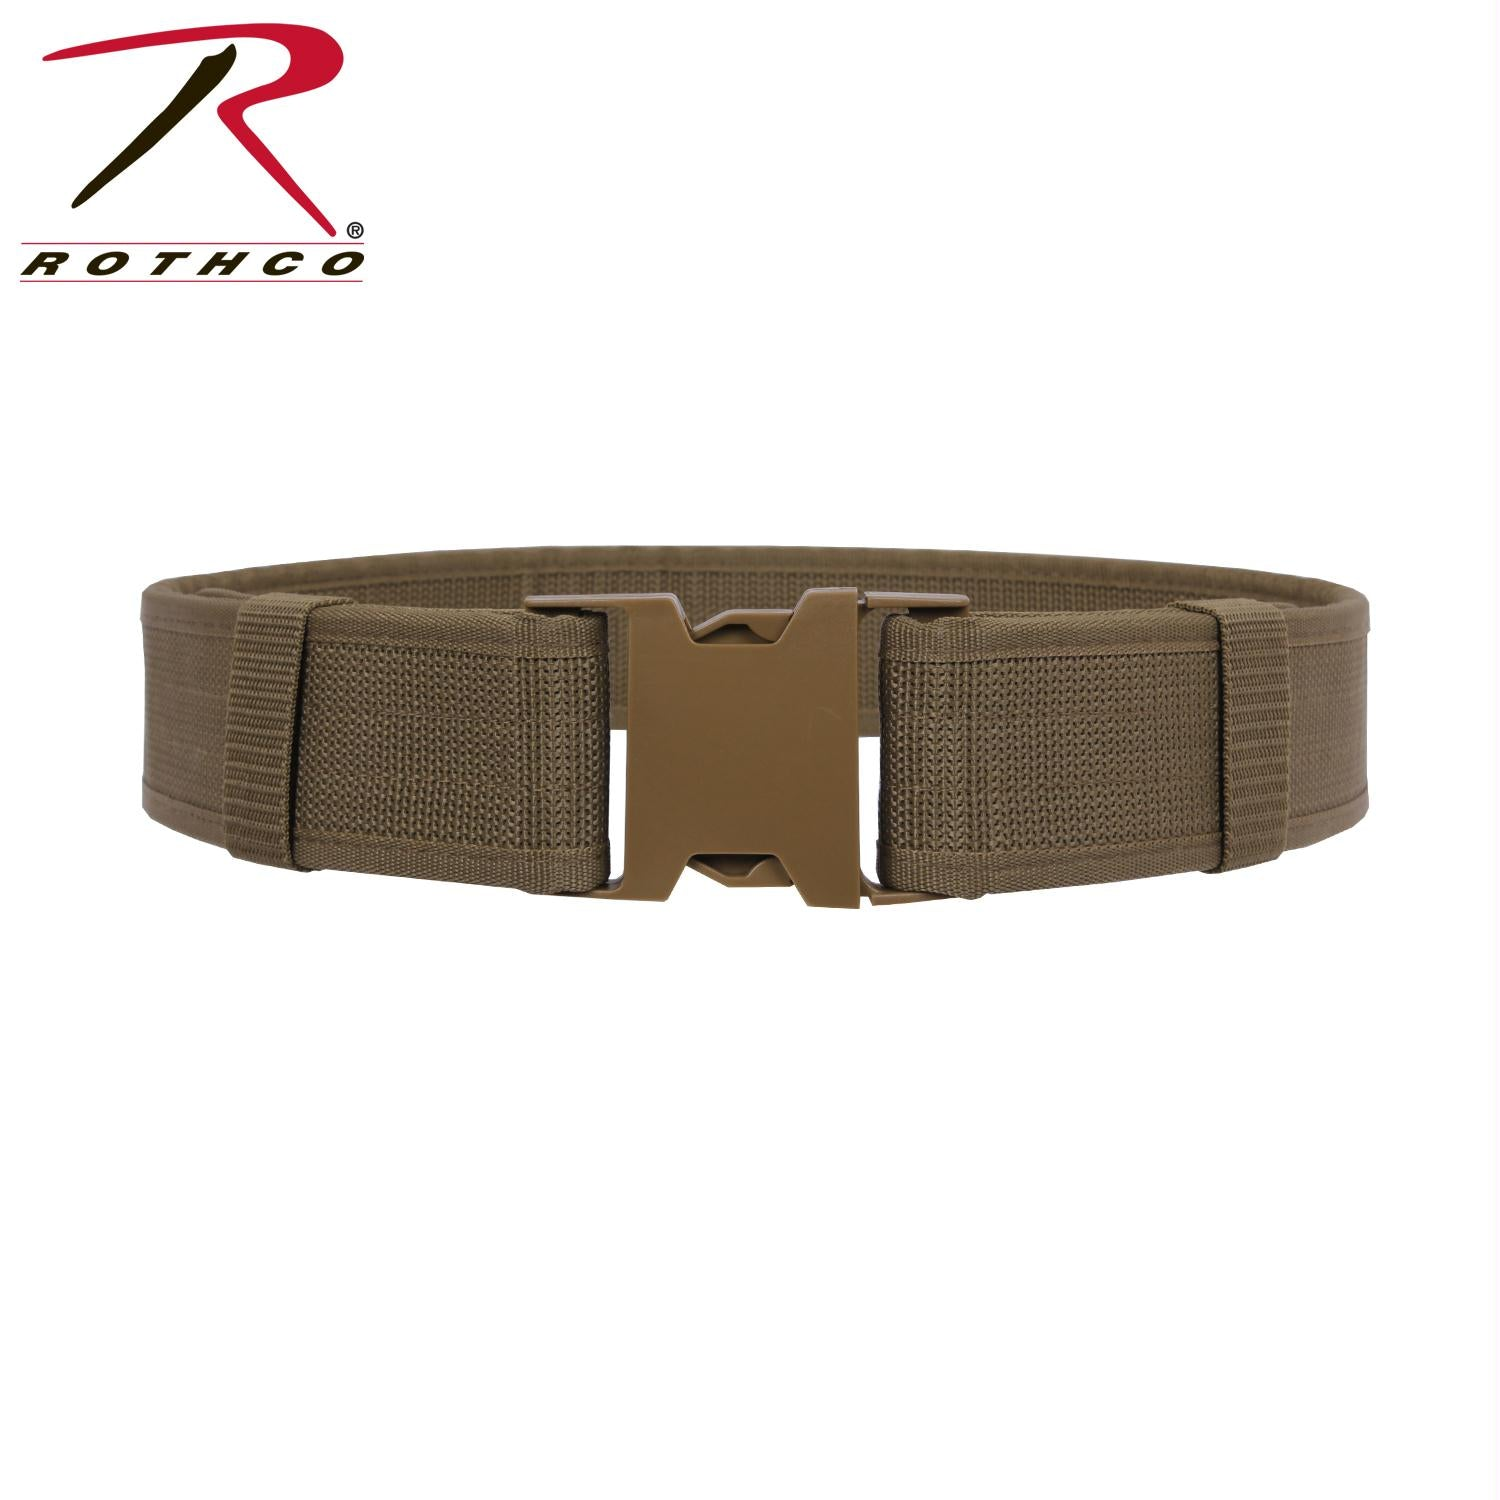 Rothco Duty Belt - Coyote Brown / 32 - 38